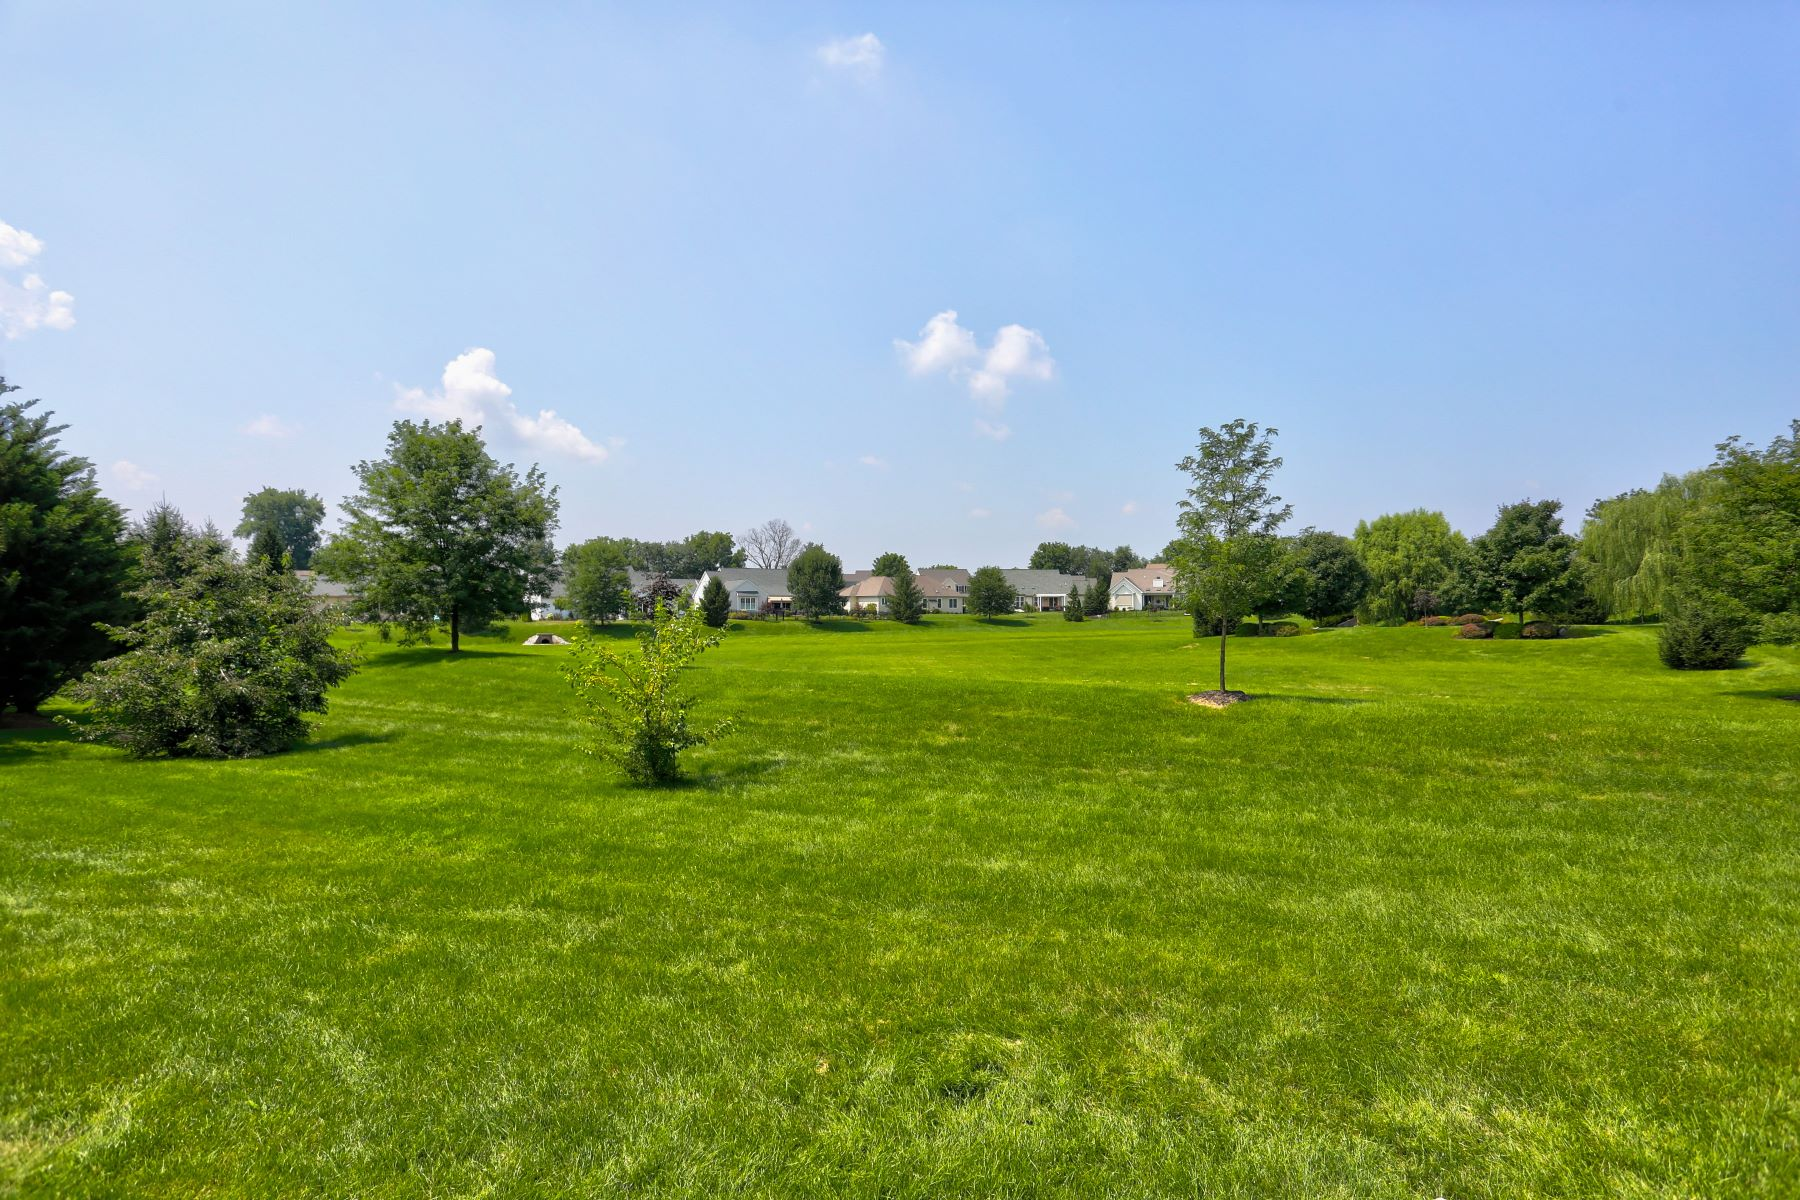 Additional photo for property listing at 481 Wheatfield Drive 481 Wheatfield Drive Lititz, Pennsylvania 17543 Estados Unidos